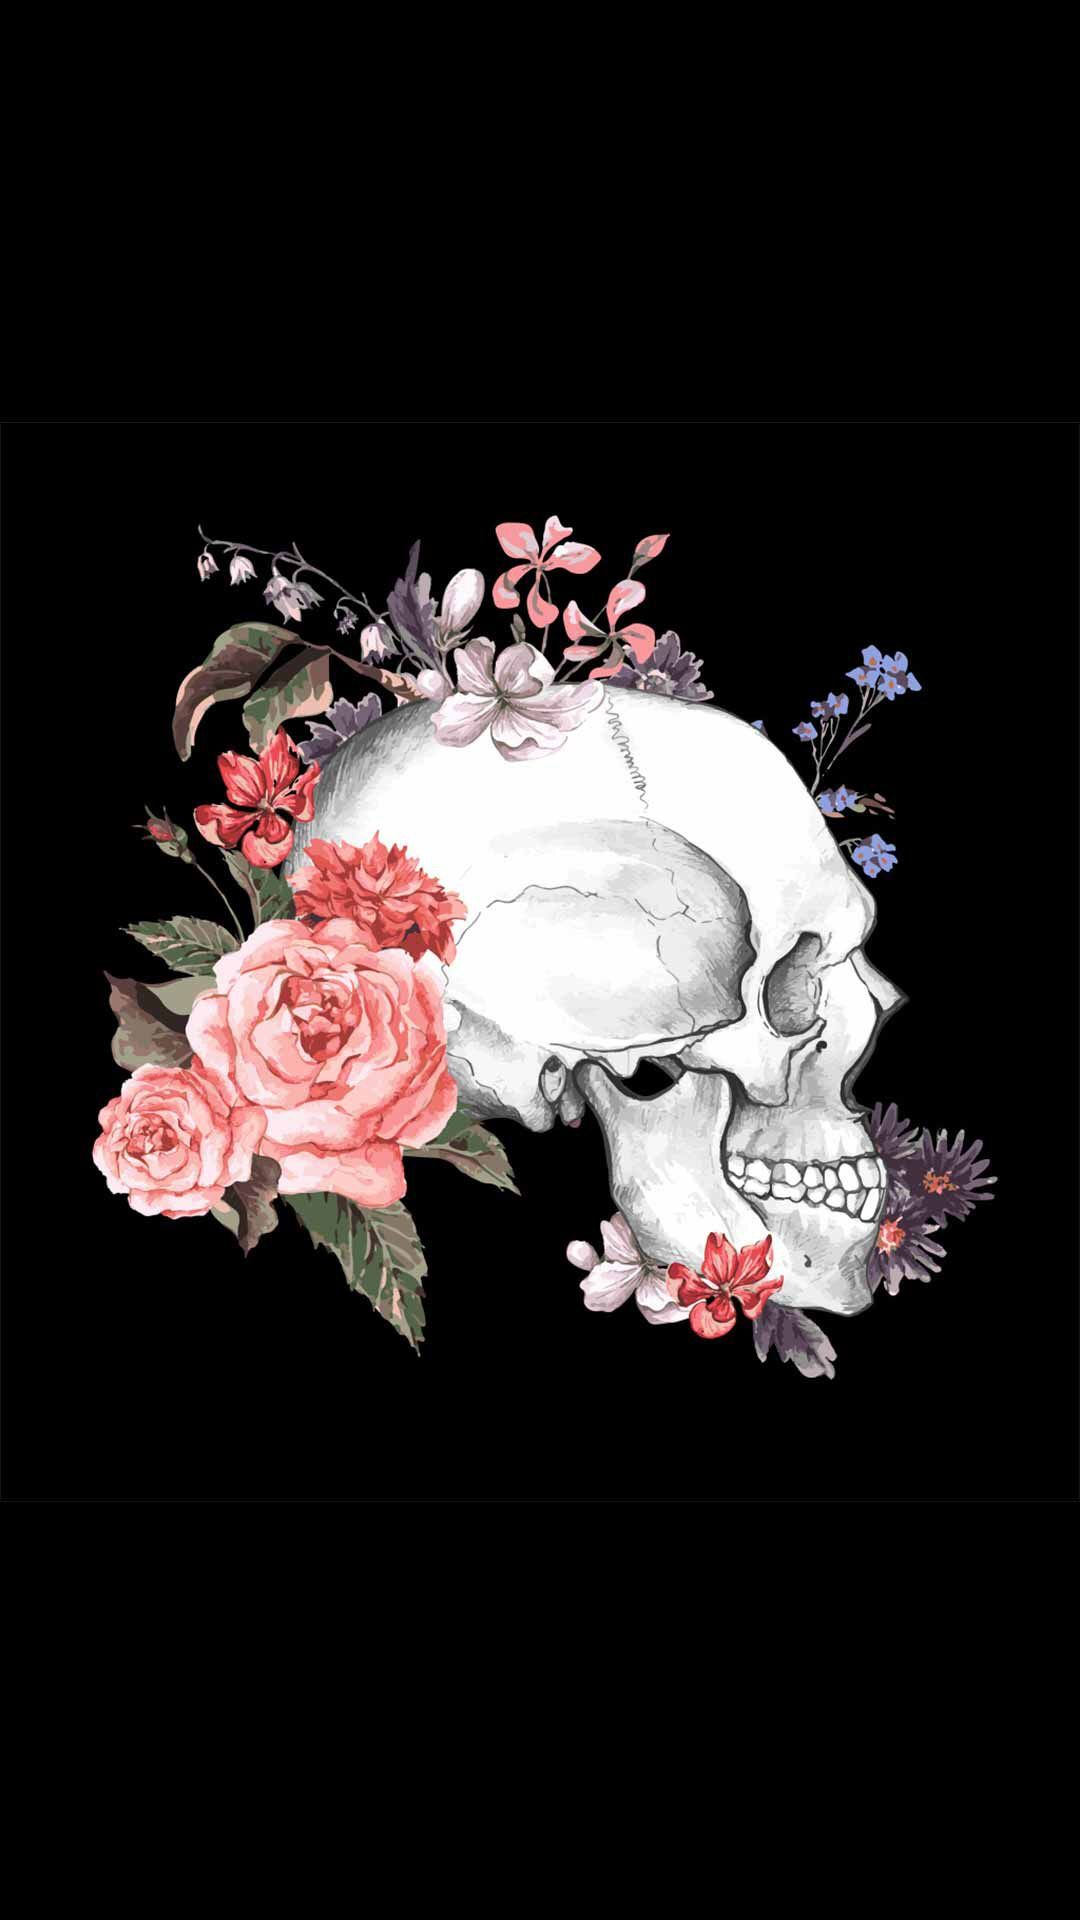 Pin by Gail LaFlamme on Skulls Decorated | Pinterest | Wallpaper ...